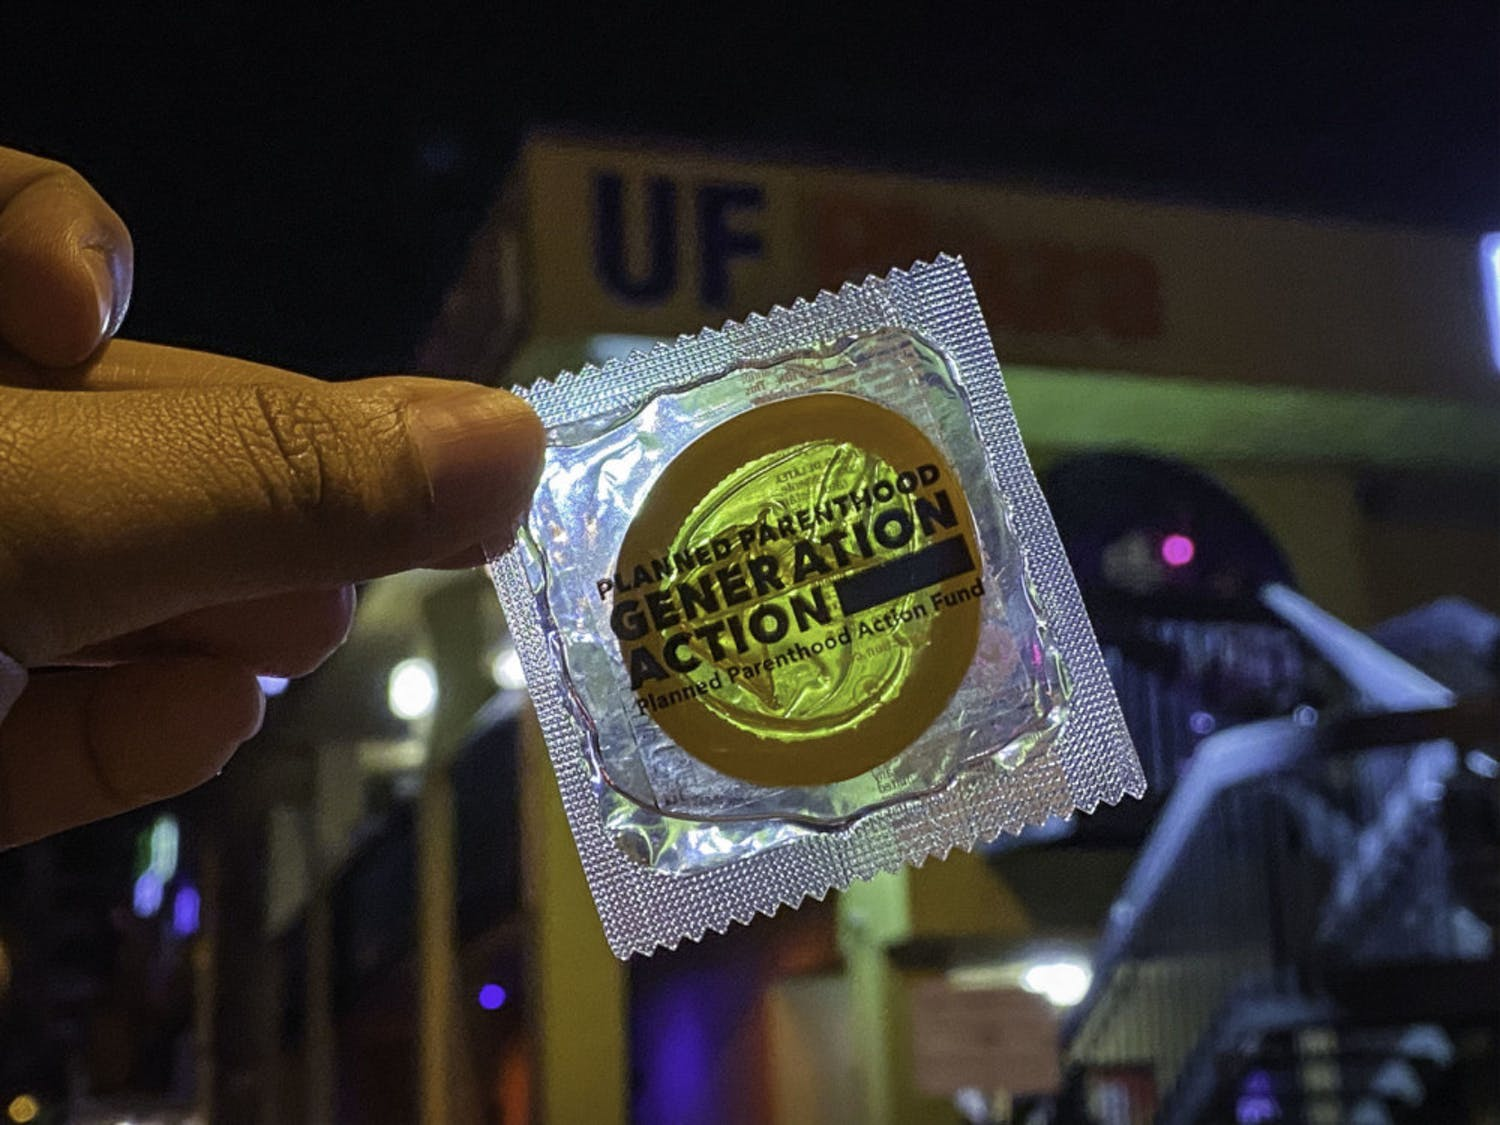 On Saturday night, Planned Parenthood Generation Action and the Women's Student Association handed out condoms and other forms of protection to those in lines for bars at Midtown.